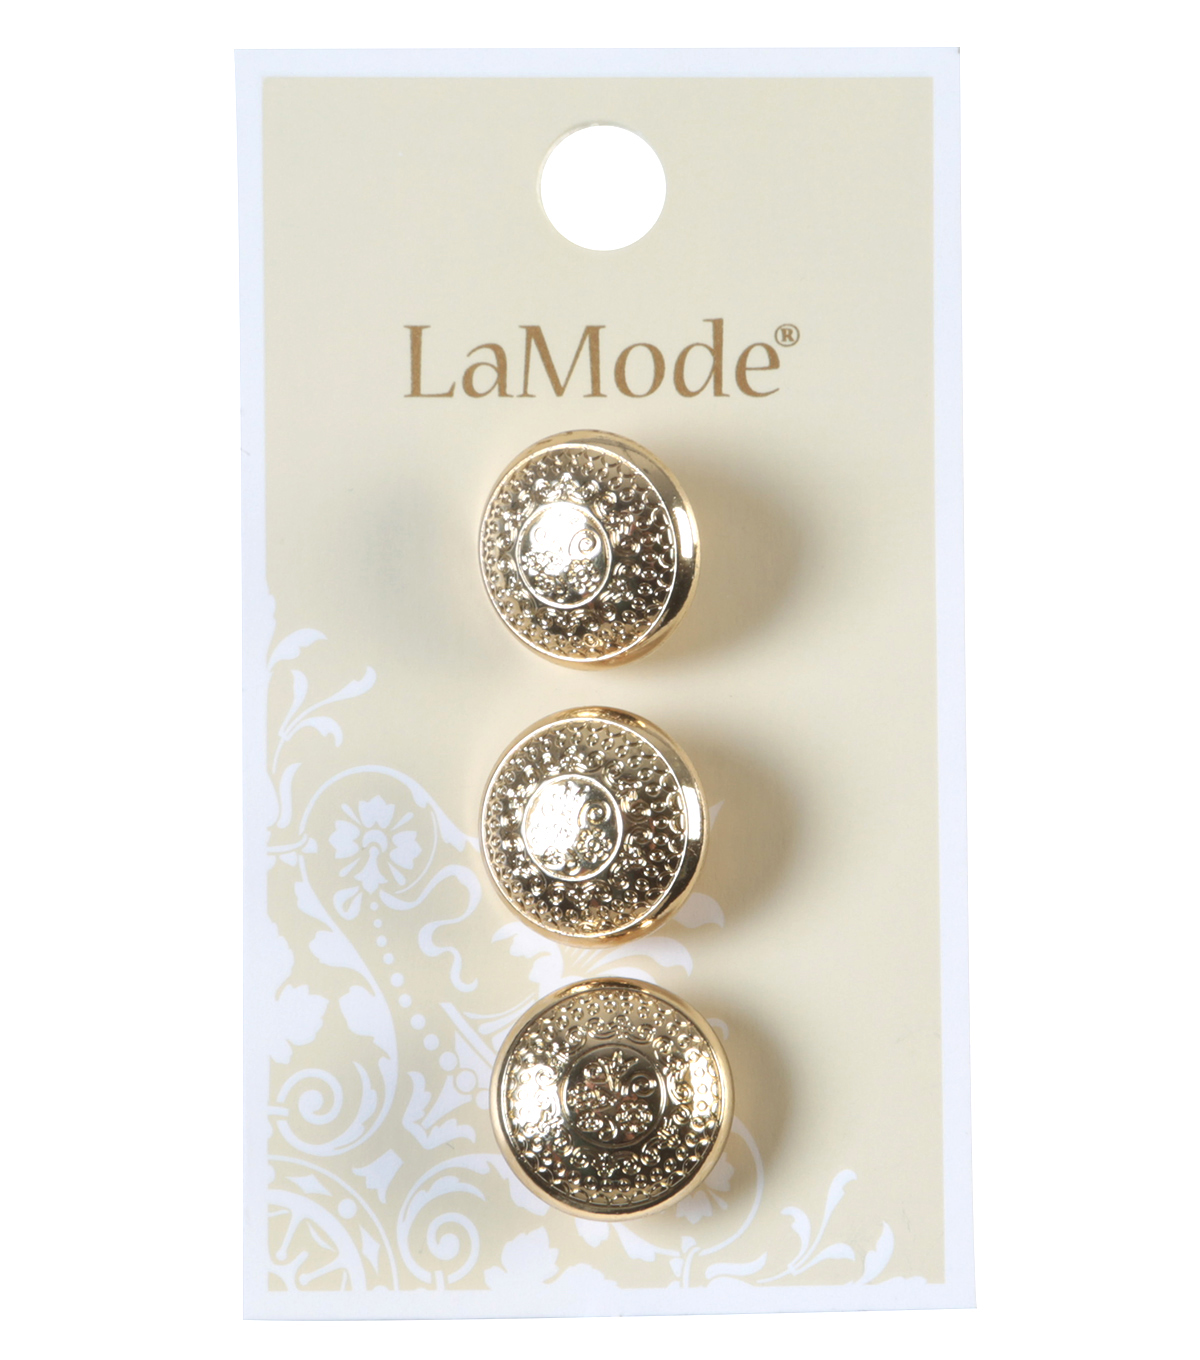 LaMode Gold Etched Buttons 16mm